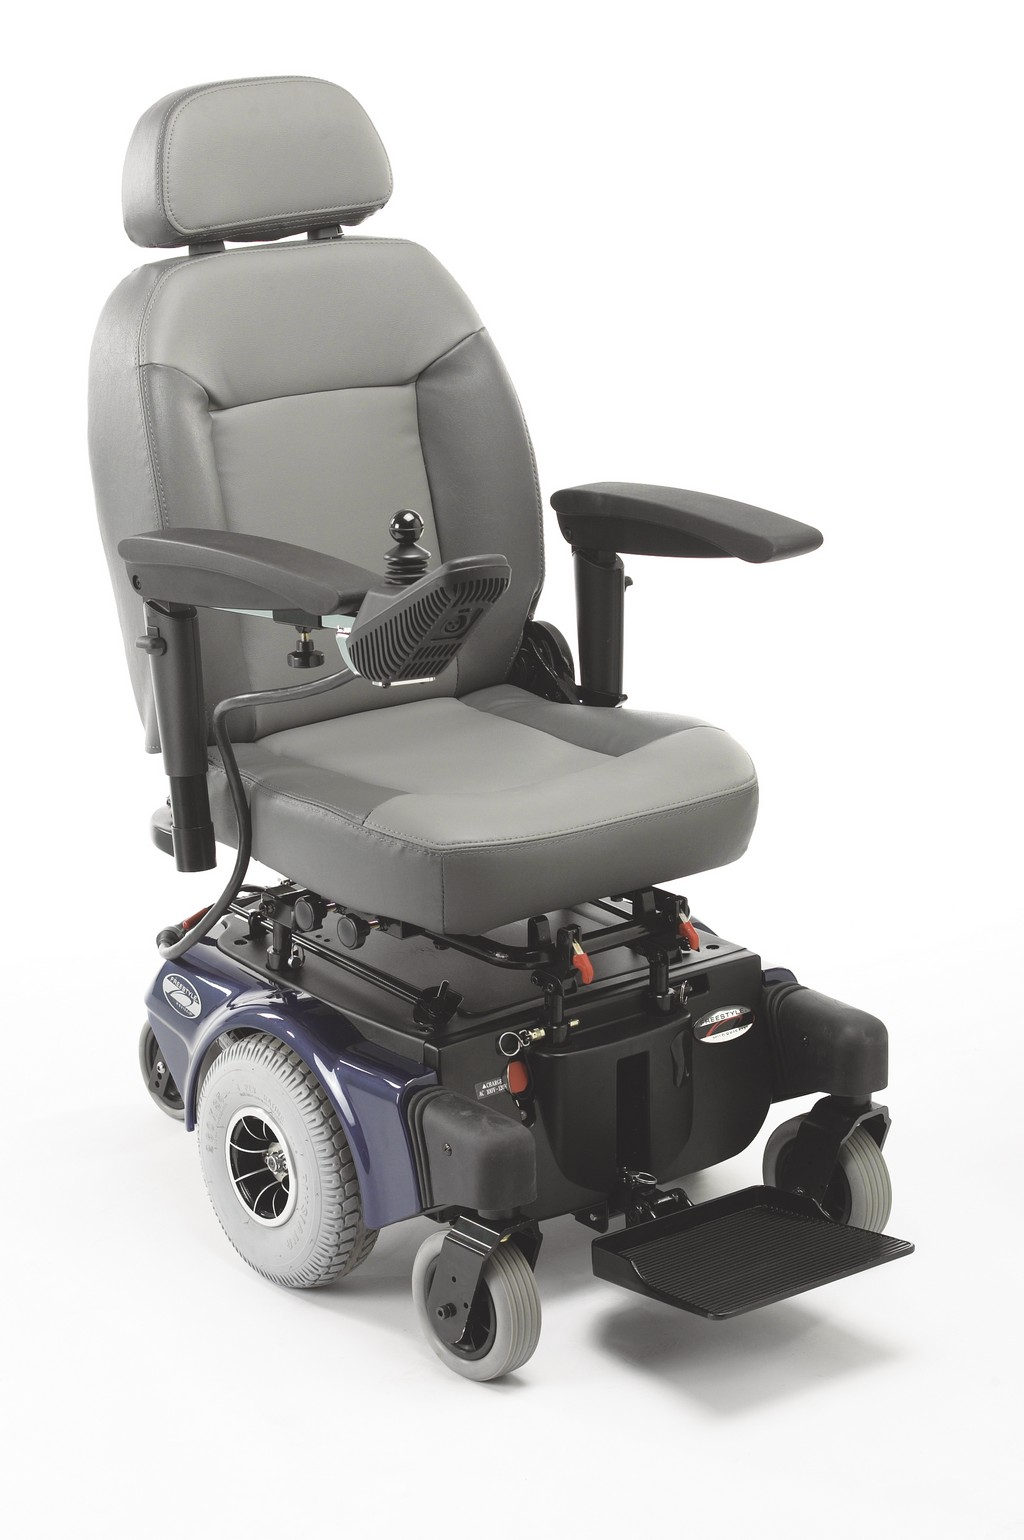 Electric Chair Mobility Wheelchair Assistance Handicap Electric Wheelchair Info